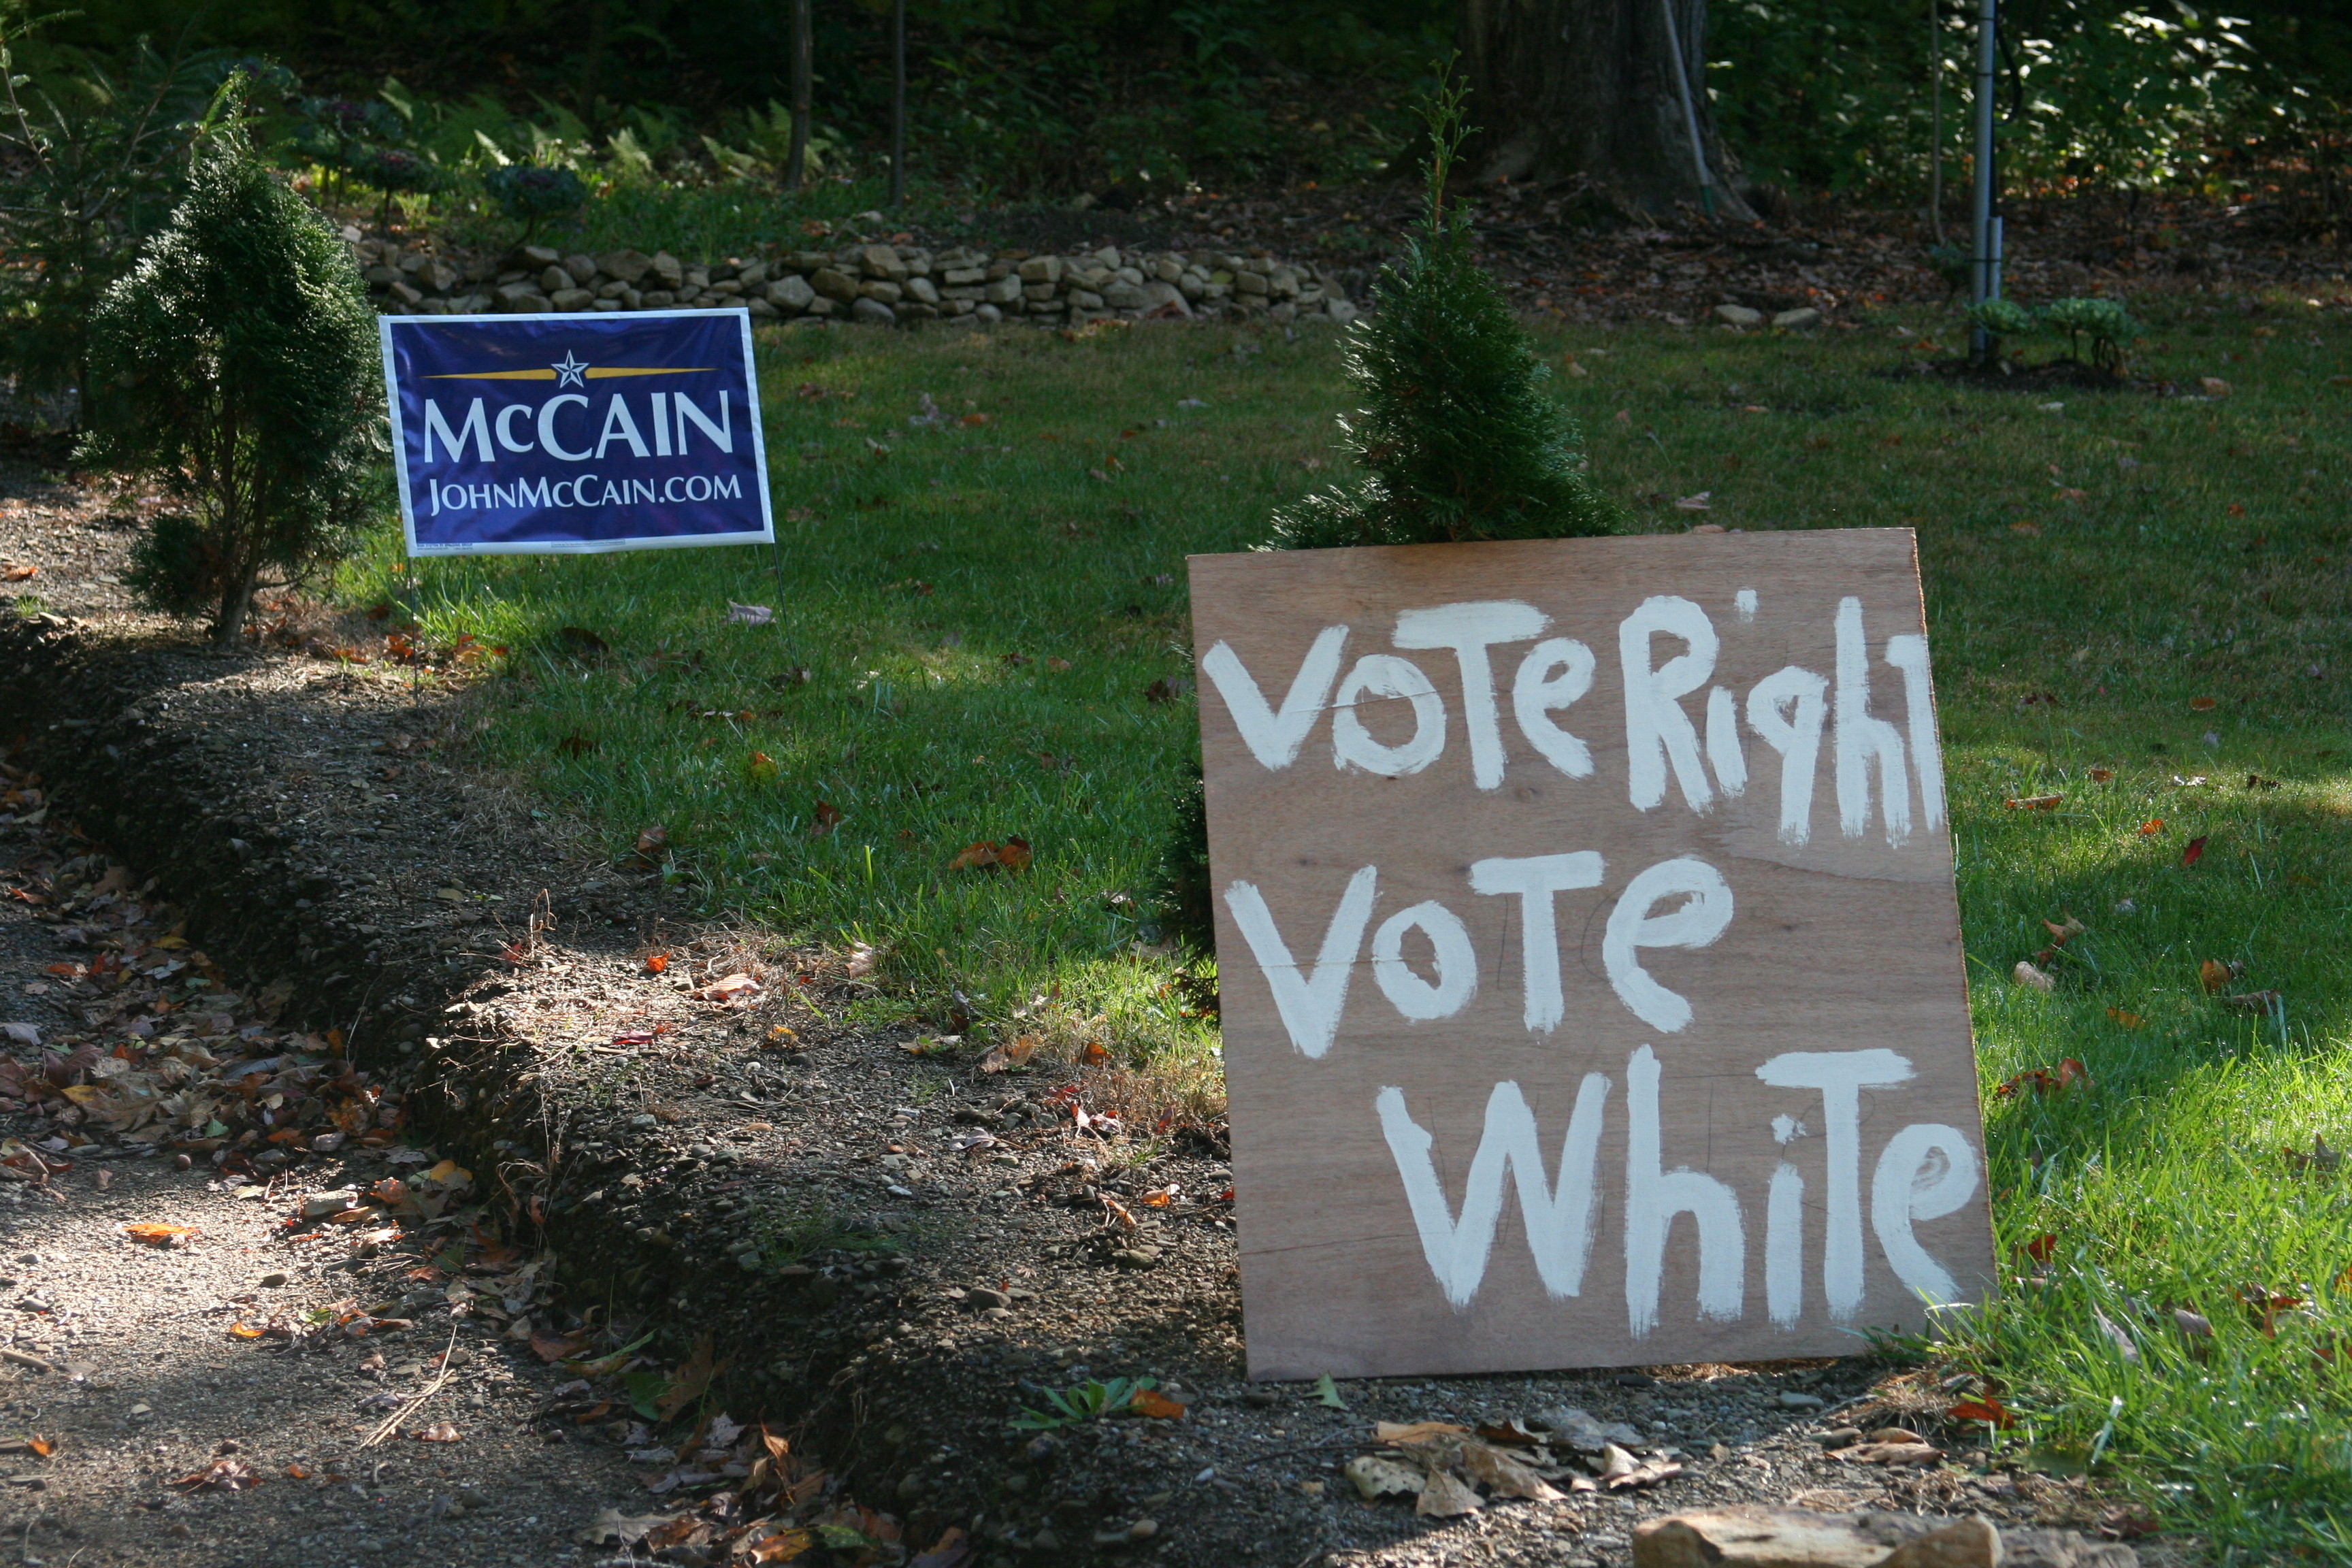 Mccain Supporters Reveal Racism